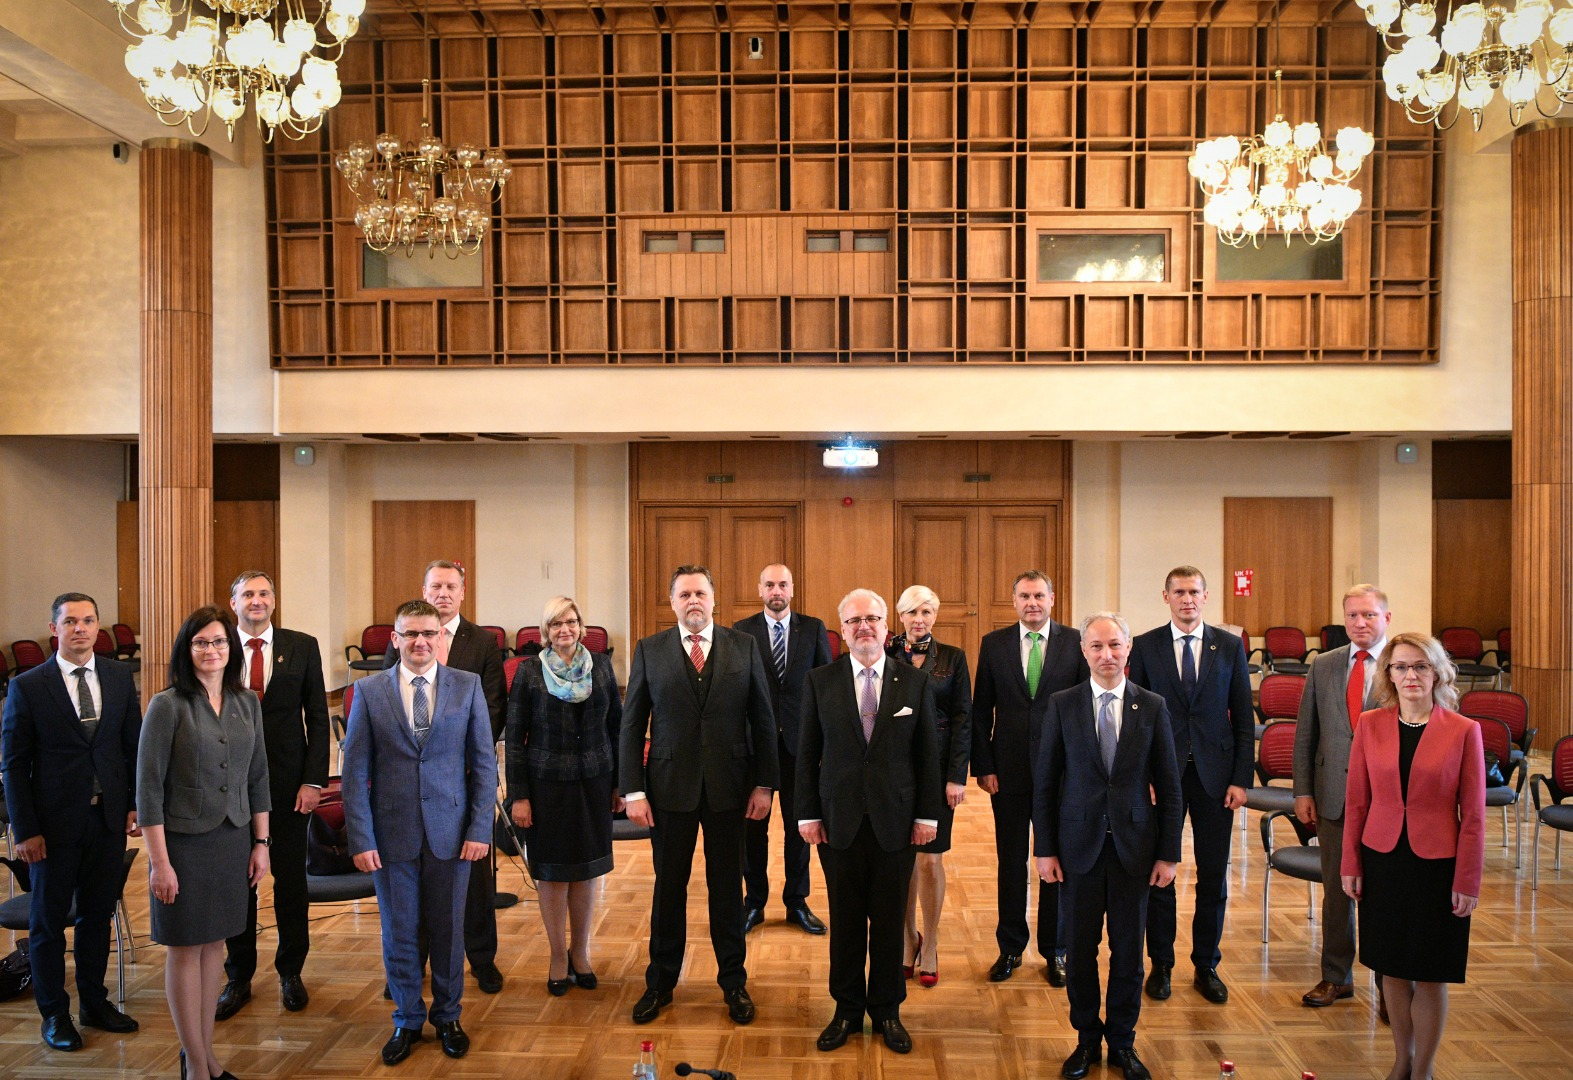 28.09.2020.  The ten-year anniversary of the Judicial Council was celebrated at the solemn sitting with the participation of the President of Latvia, current and former members of the Judicial Council, heads of judicial self-government organizations. Photo by the Chancery of State President.